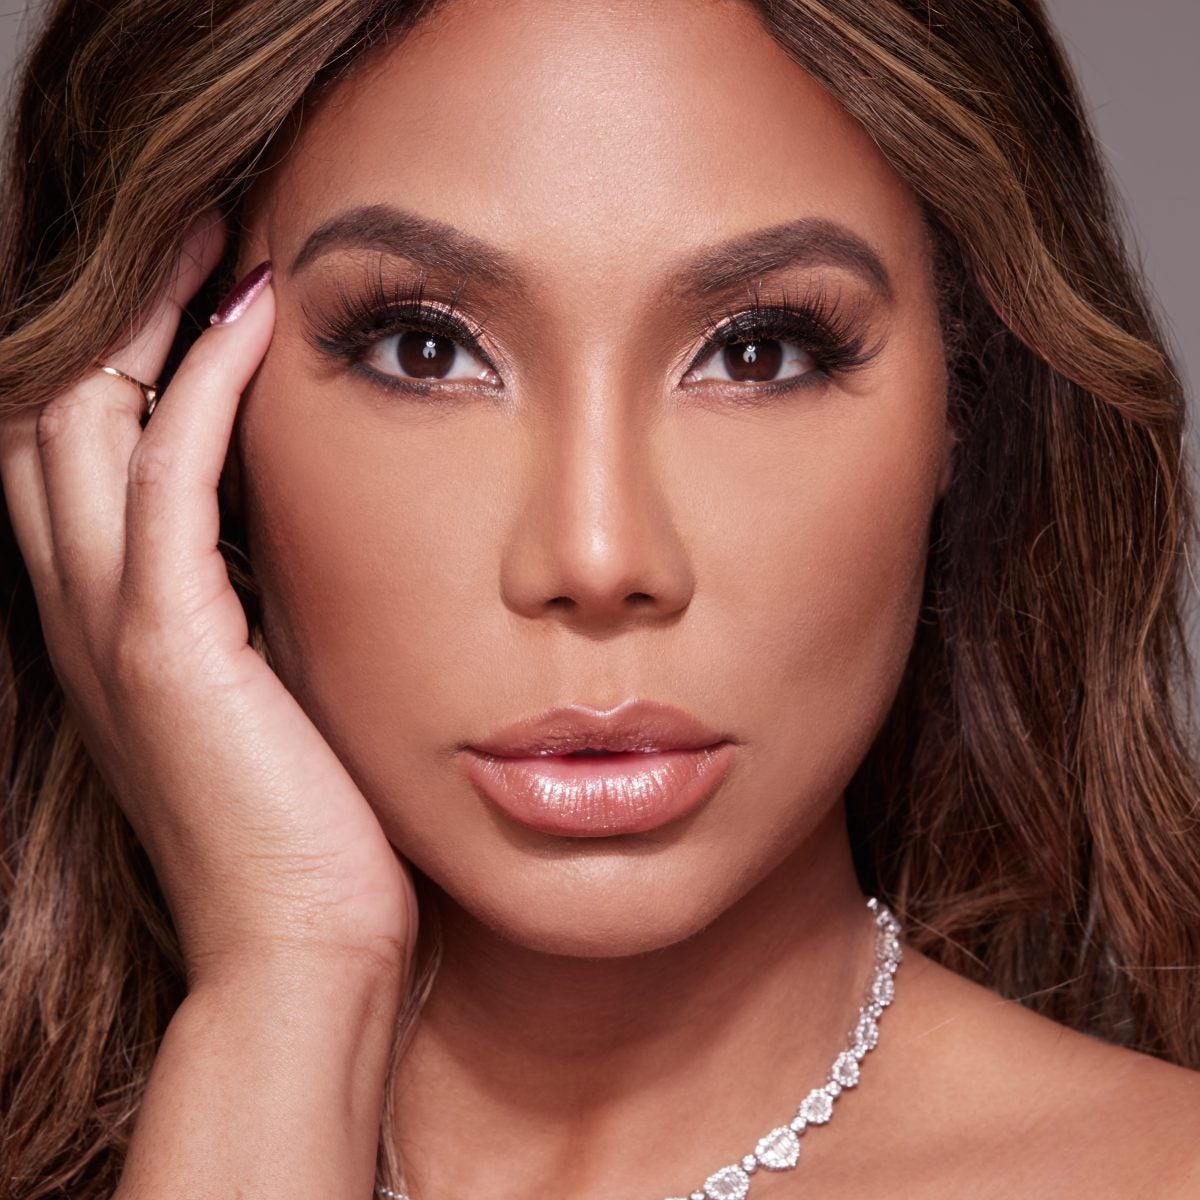 Tamar Braxton Moved To Mental Health Facility Following Hospitalization: Report